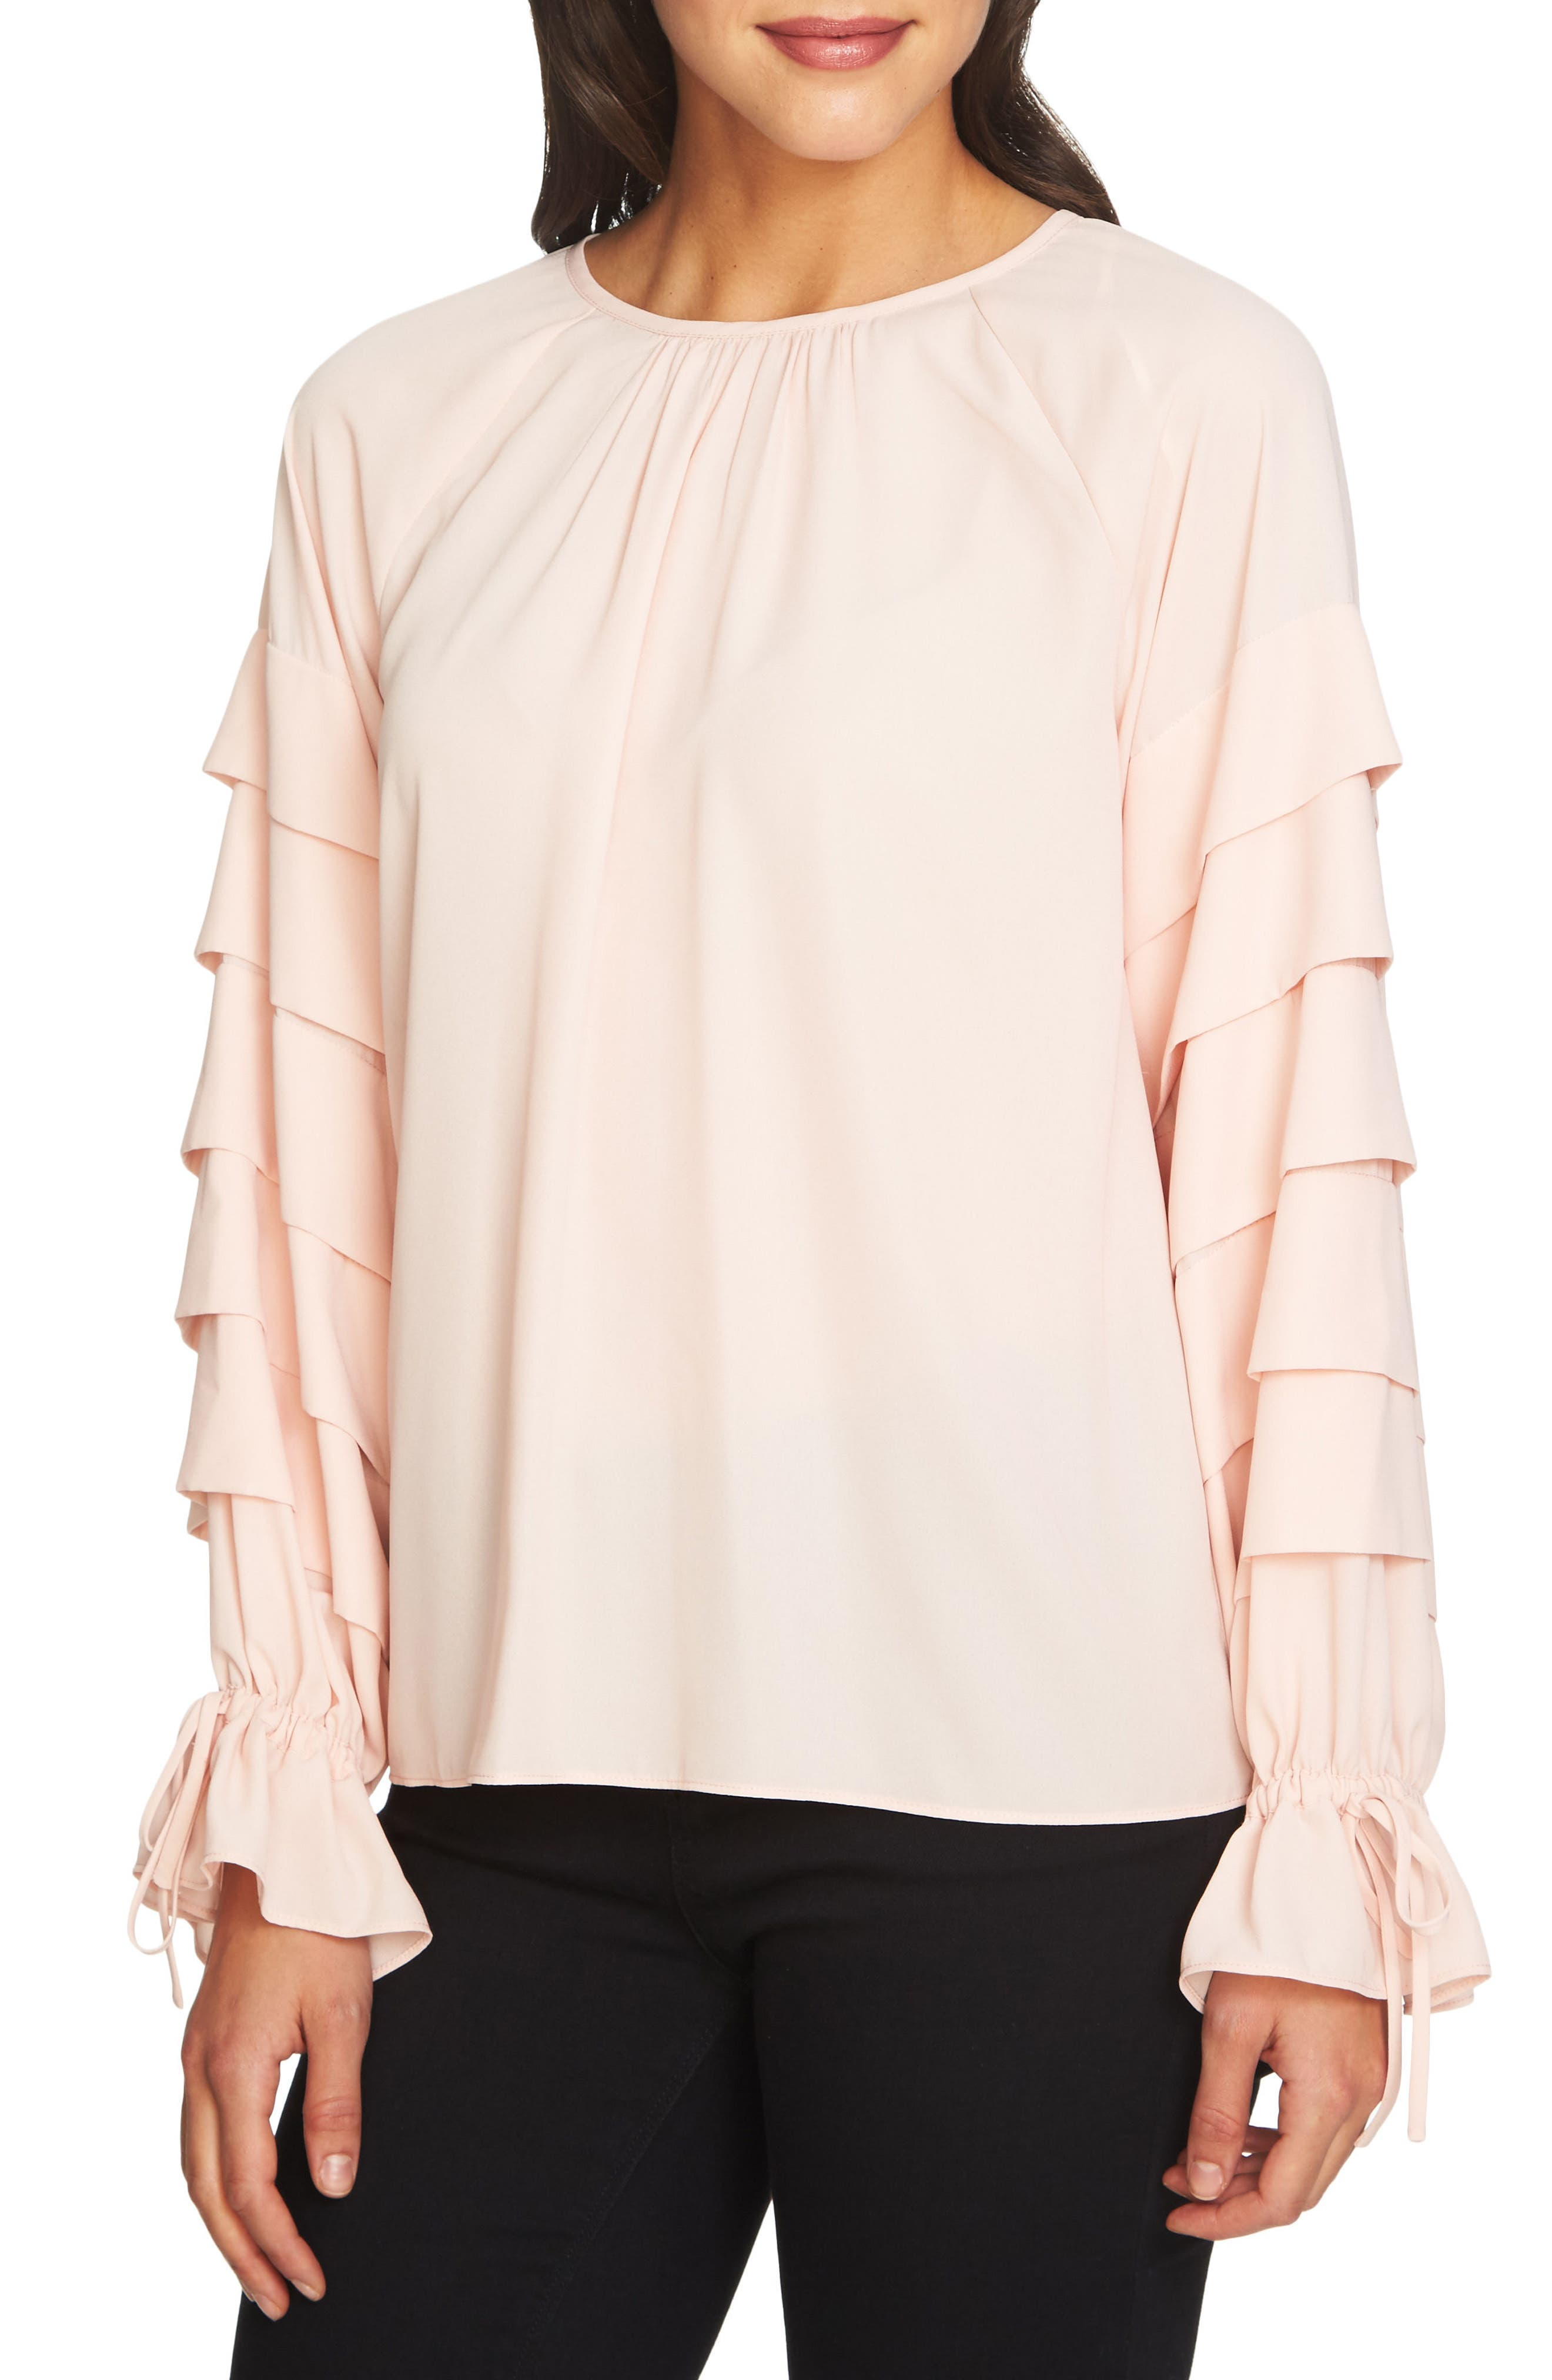 Main Image - 1.STATE Tiered Sleeve Top